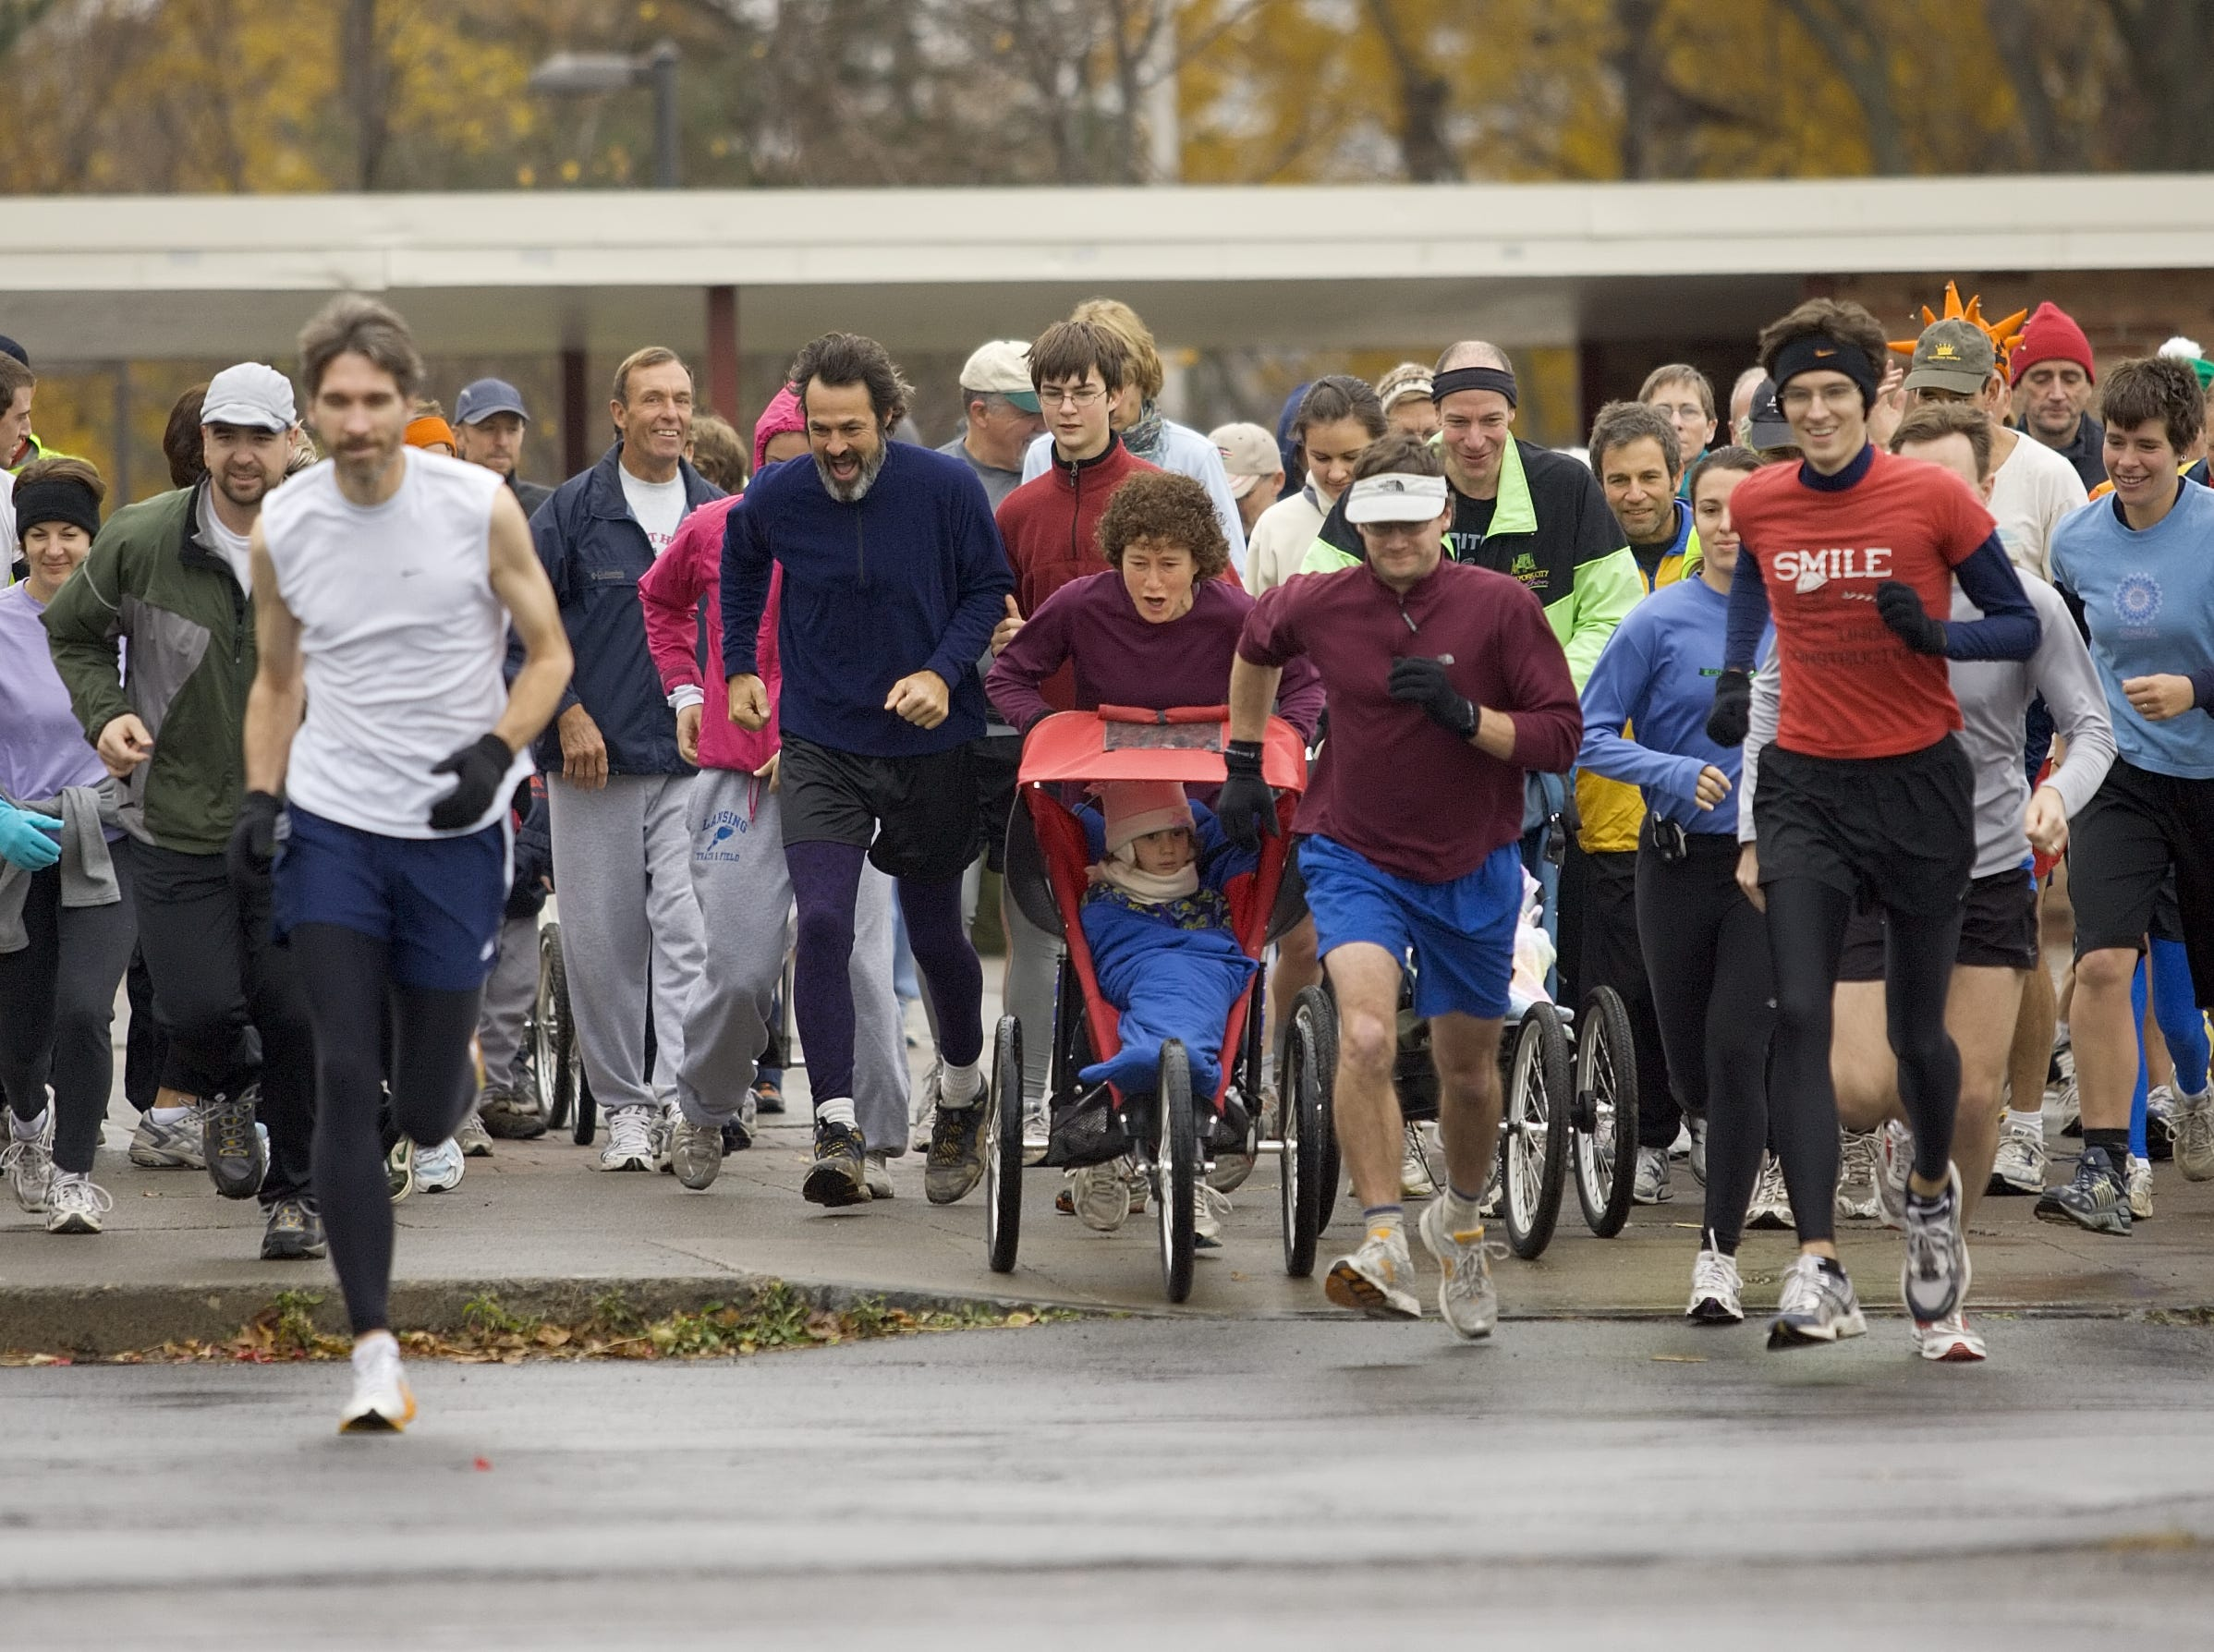 From 2007: The participants in the 35th Annual Bob's Prediction Turkey Trot leave Ithaca High school Thursday morning before running an approximately 5 mile course through Cayuga Heights, Stewart Park and Newman Golf Course. The object of the fun and social oriented event is to predict your time and those who finish closest to their prediction take home a pie.